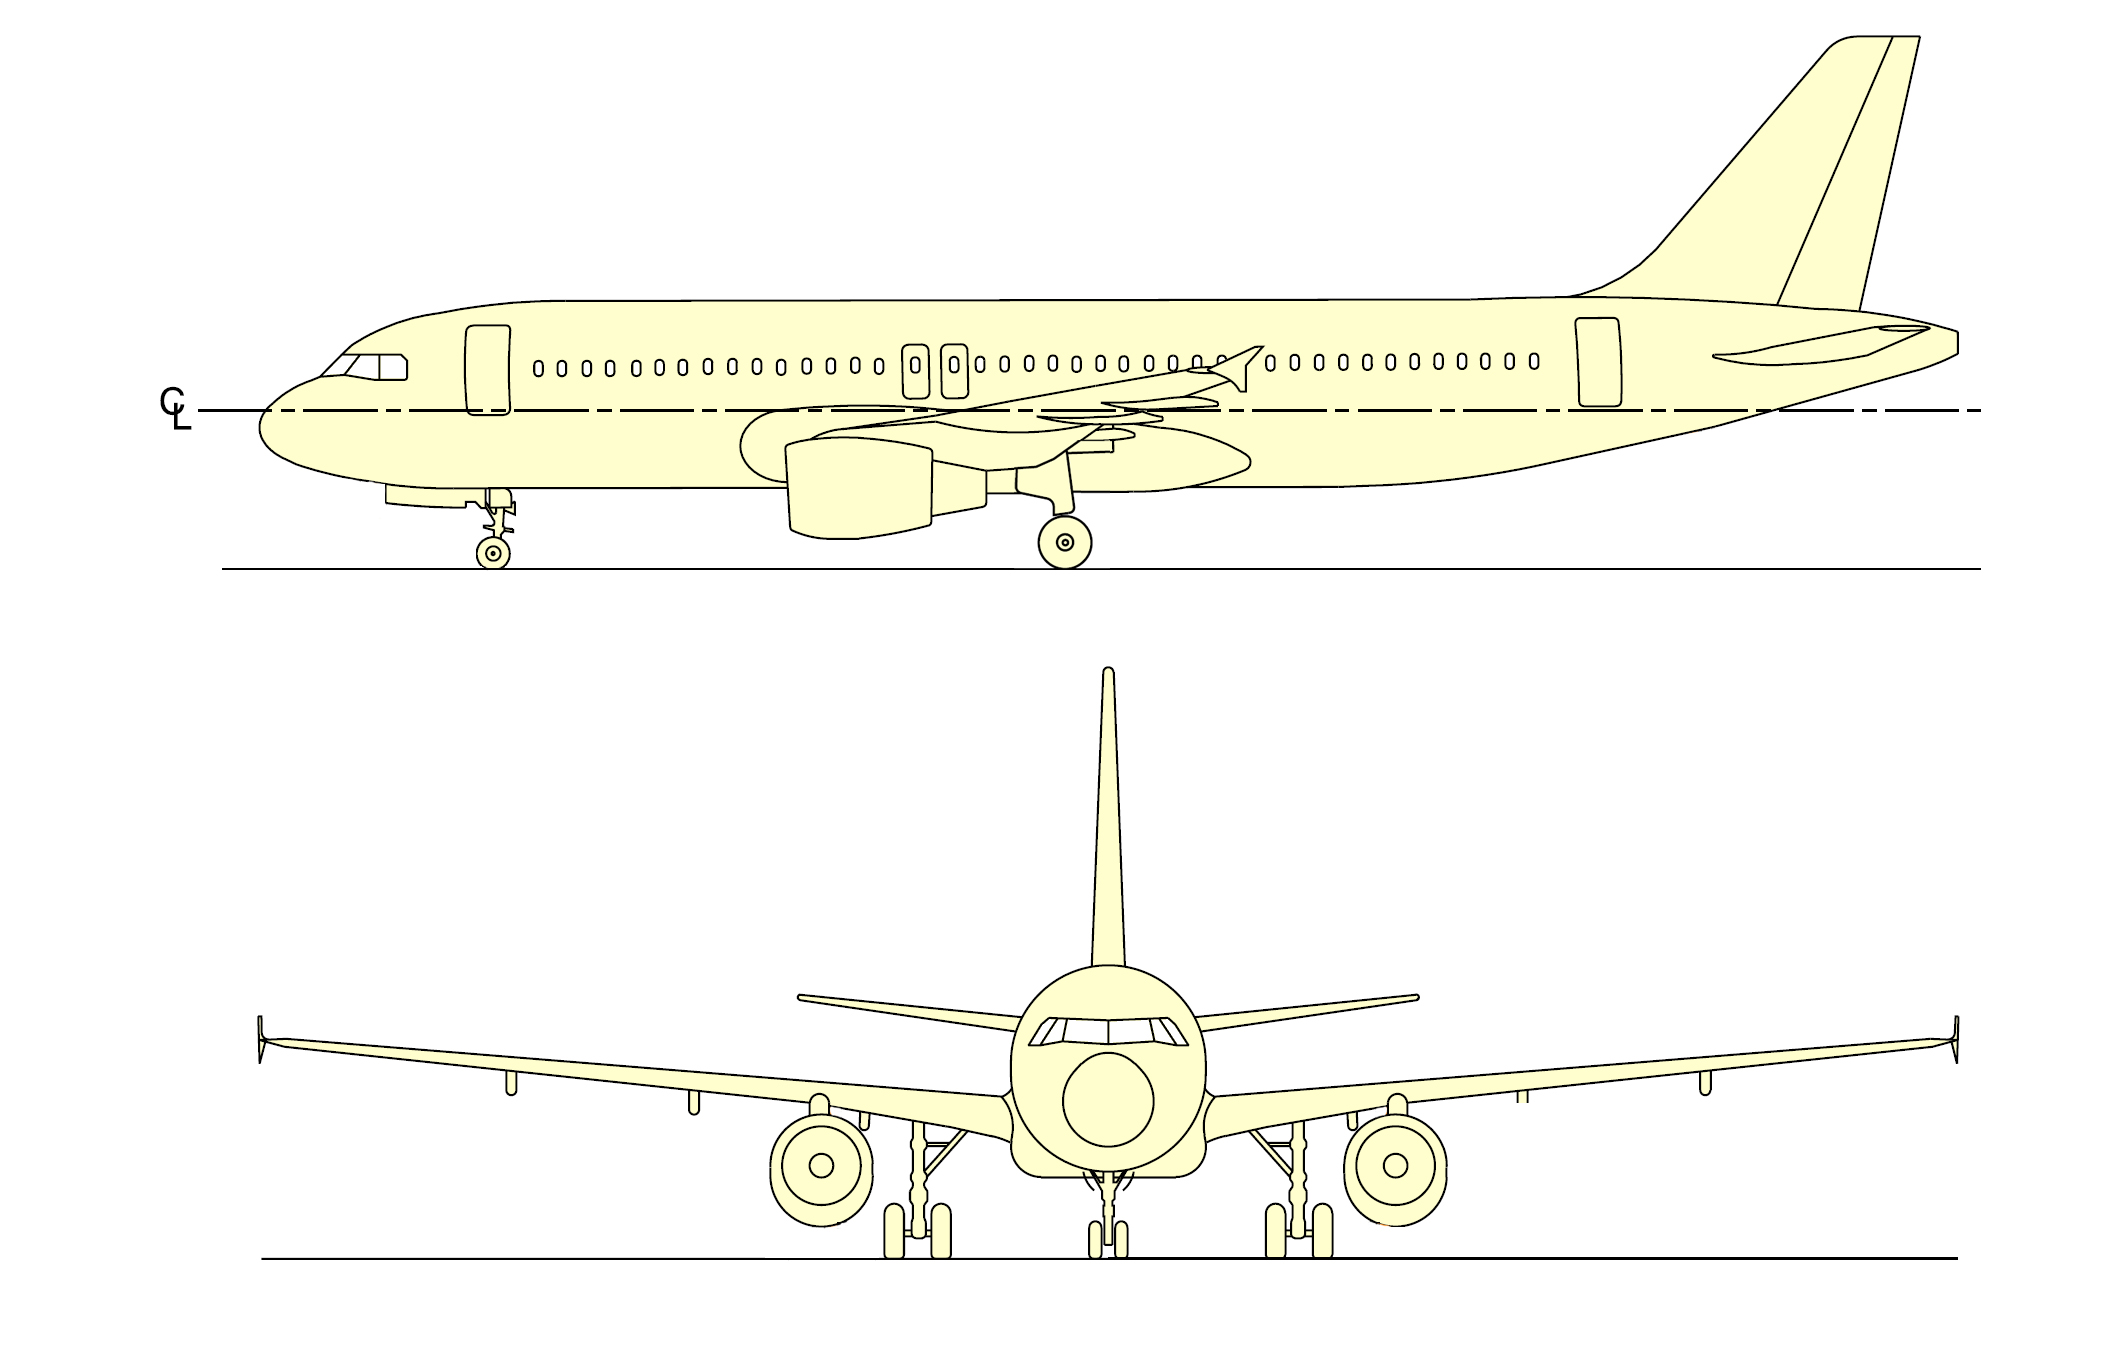 A320 profiles from side and front